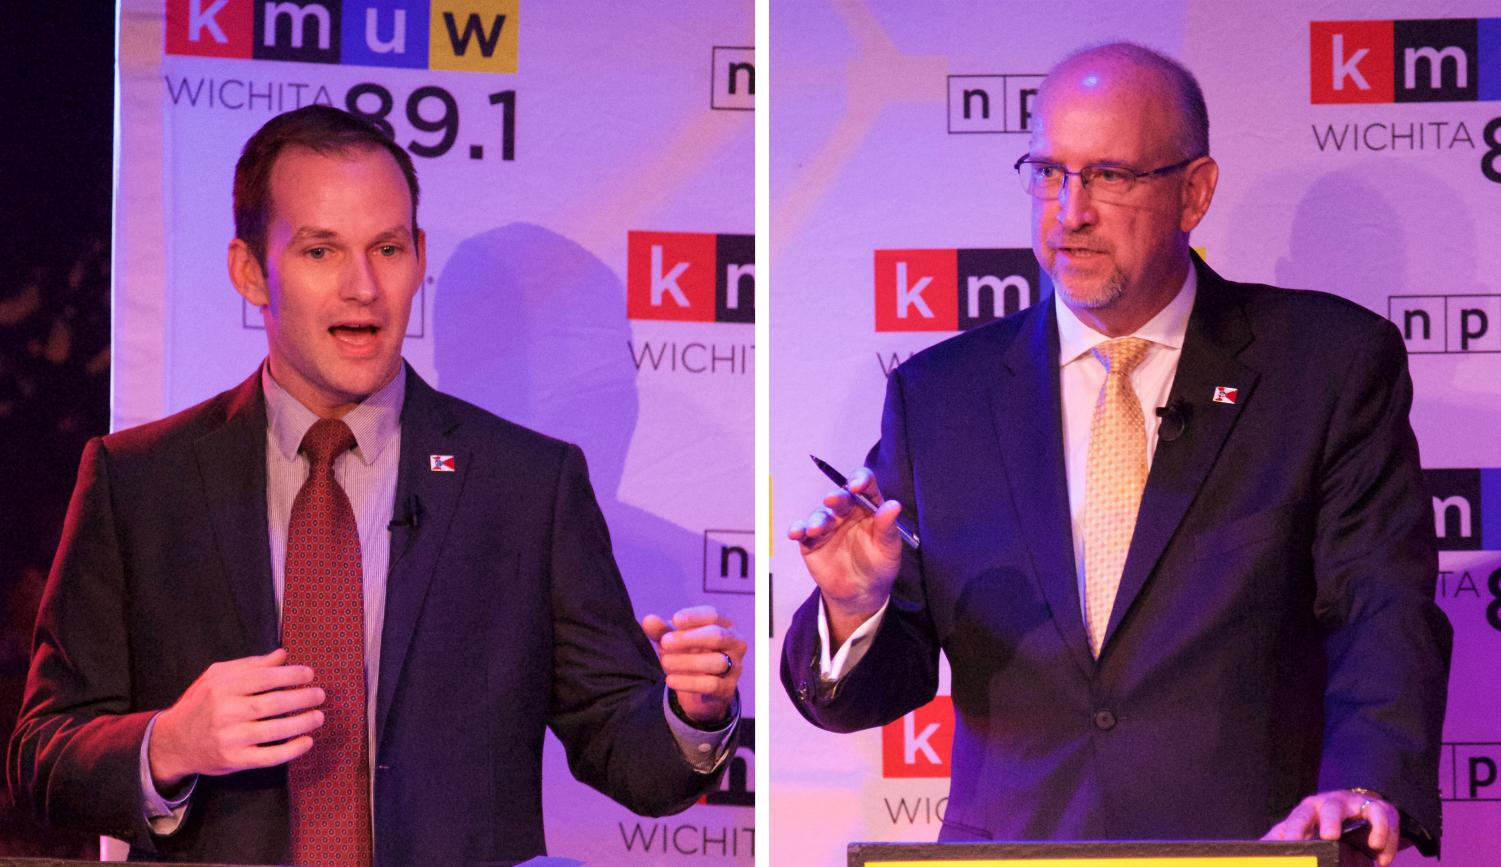 State Rep. Brandon Whipple, an adjunct professor at Wichita State, and Mayor Jeff Longwell speak Tuesday during KMUW's mayoral debate. The two will square off for mayor of Wichita in the Nov. 5 general election.